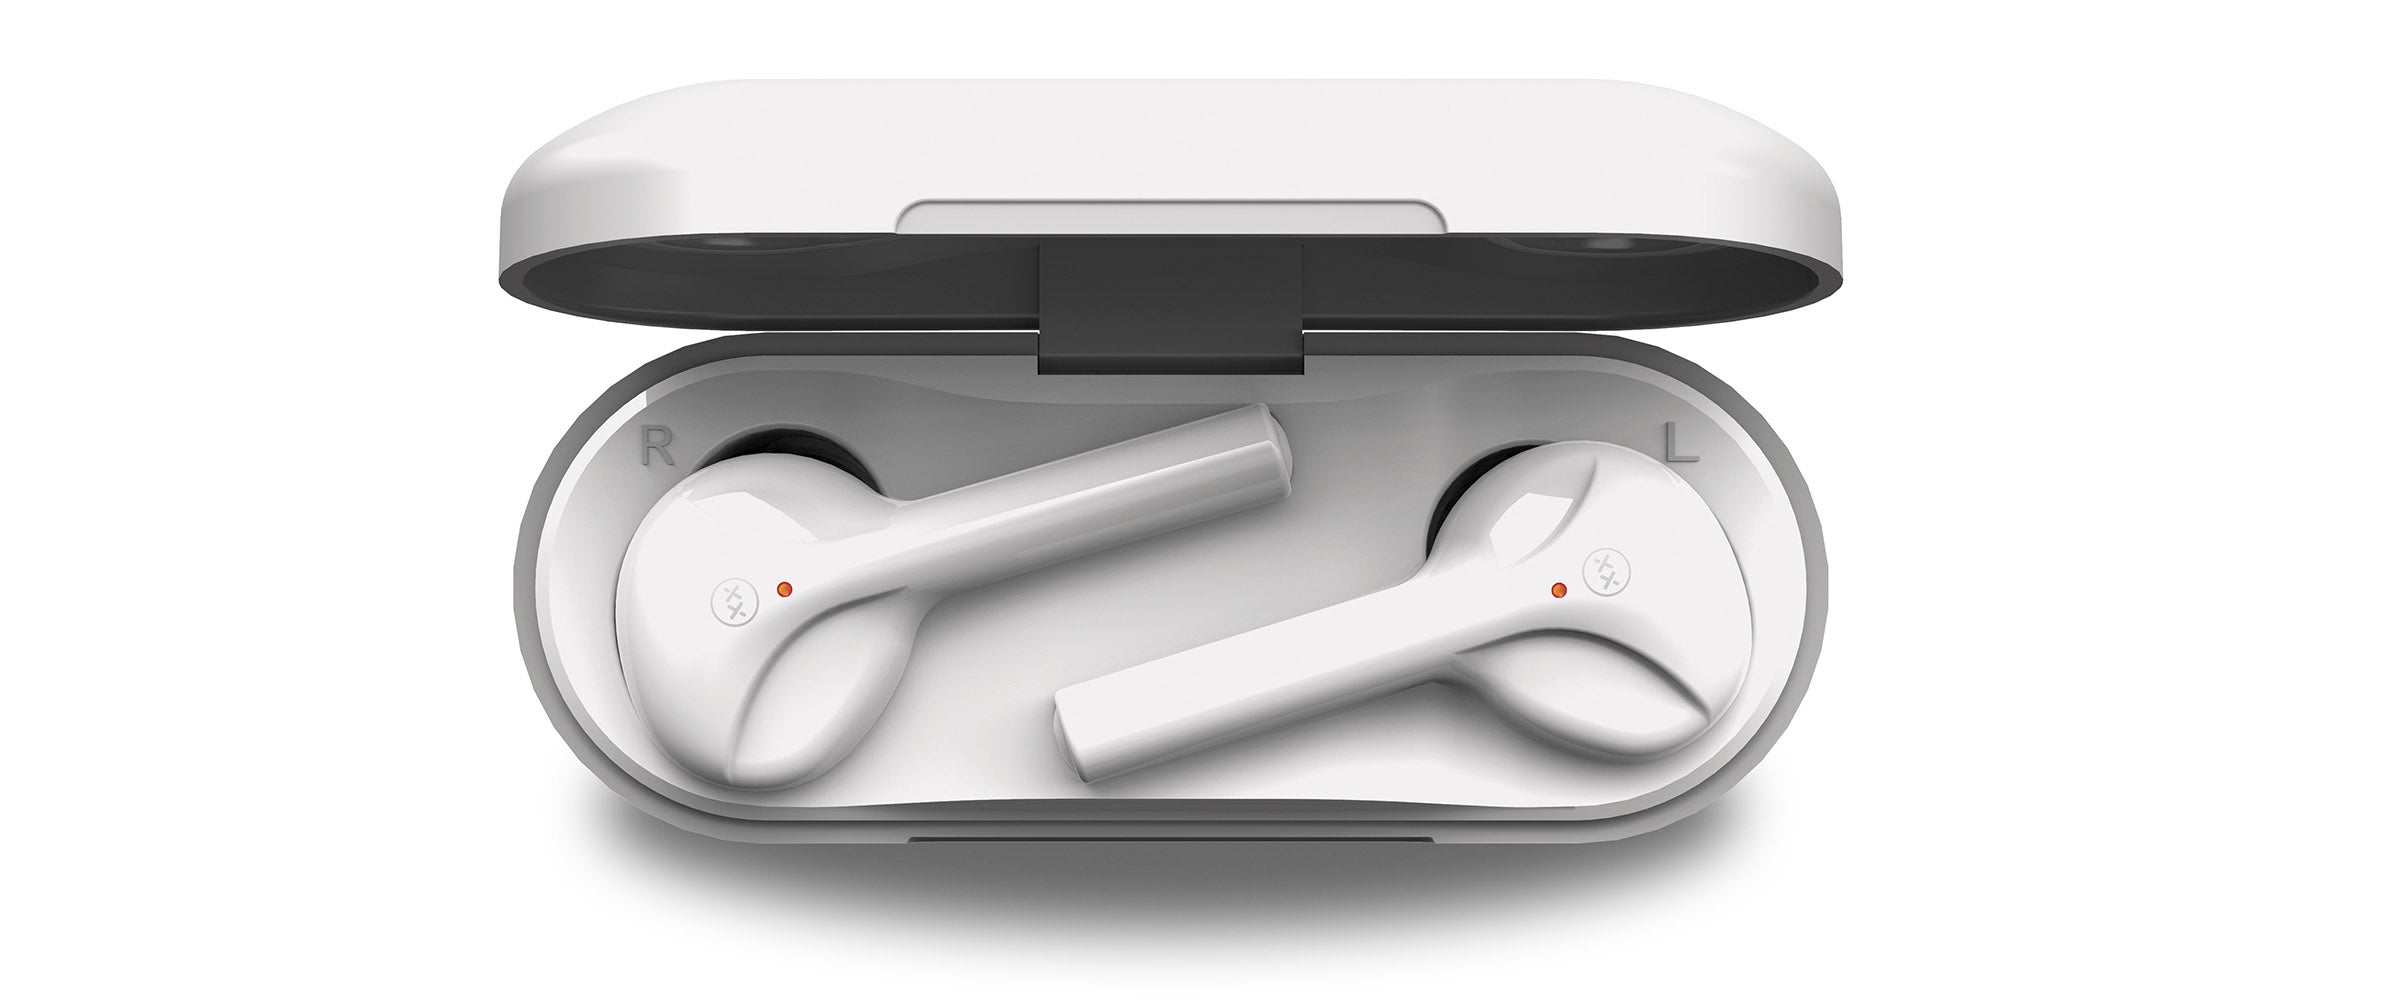 StreamBuds SX true wireless earbuds in charging case